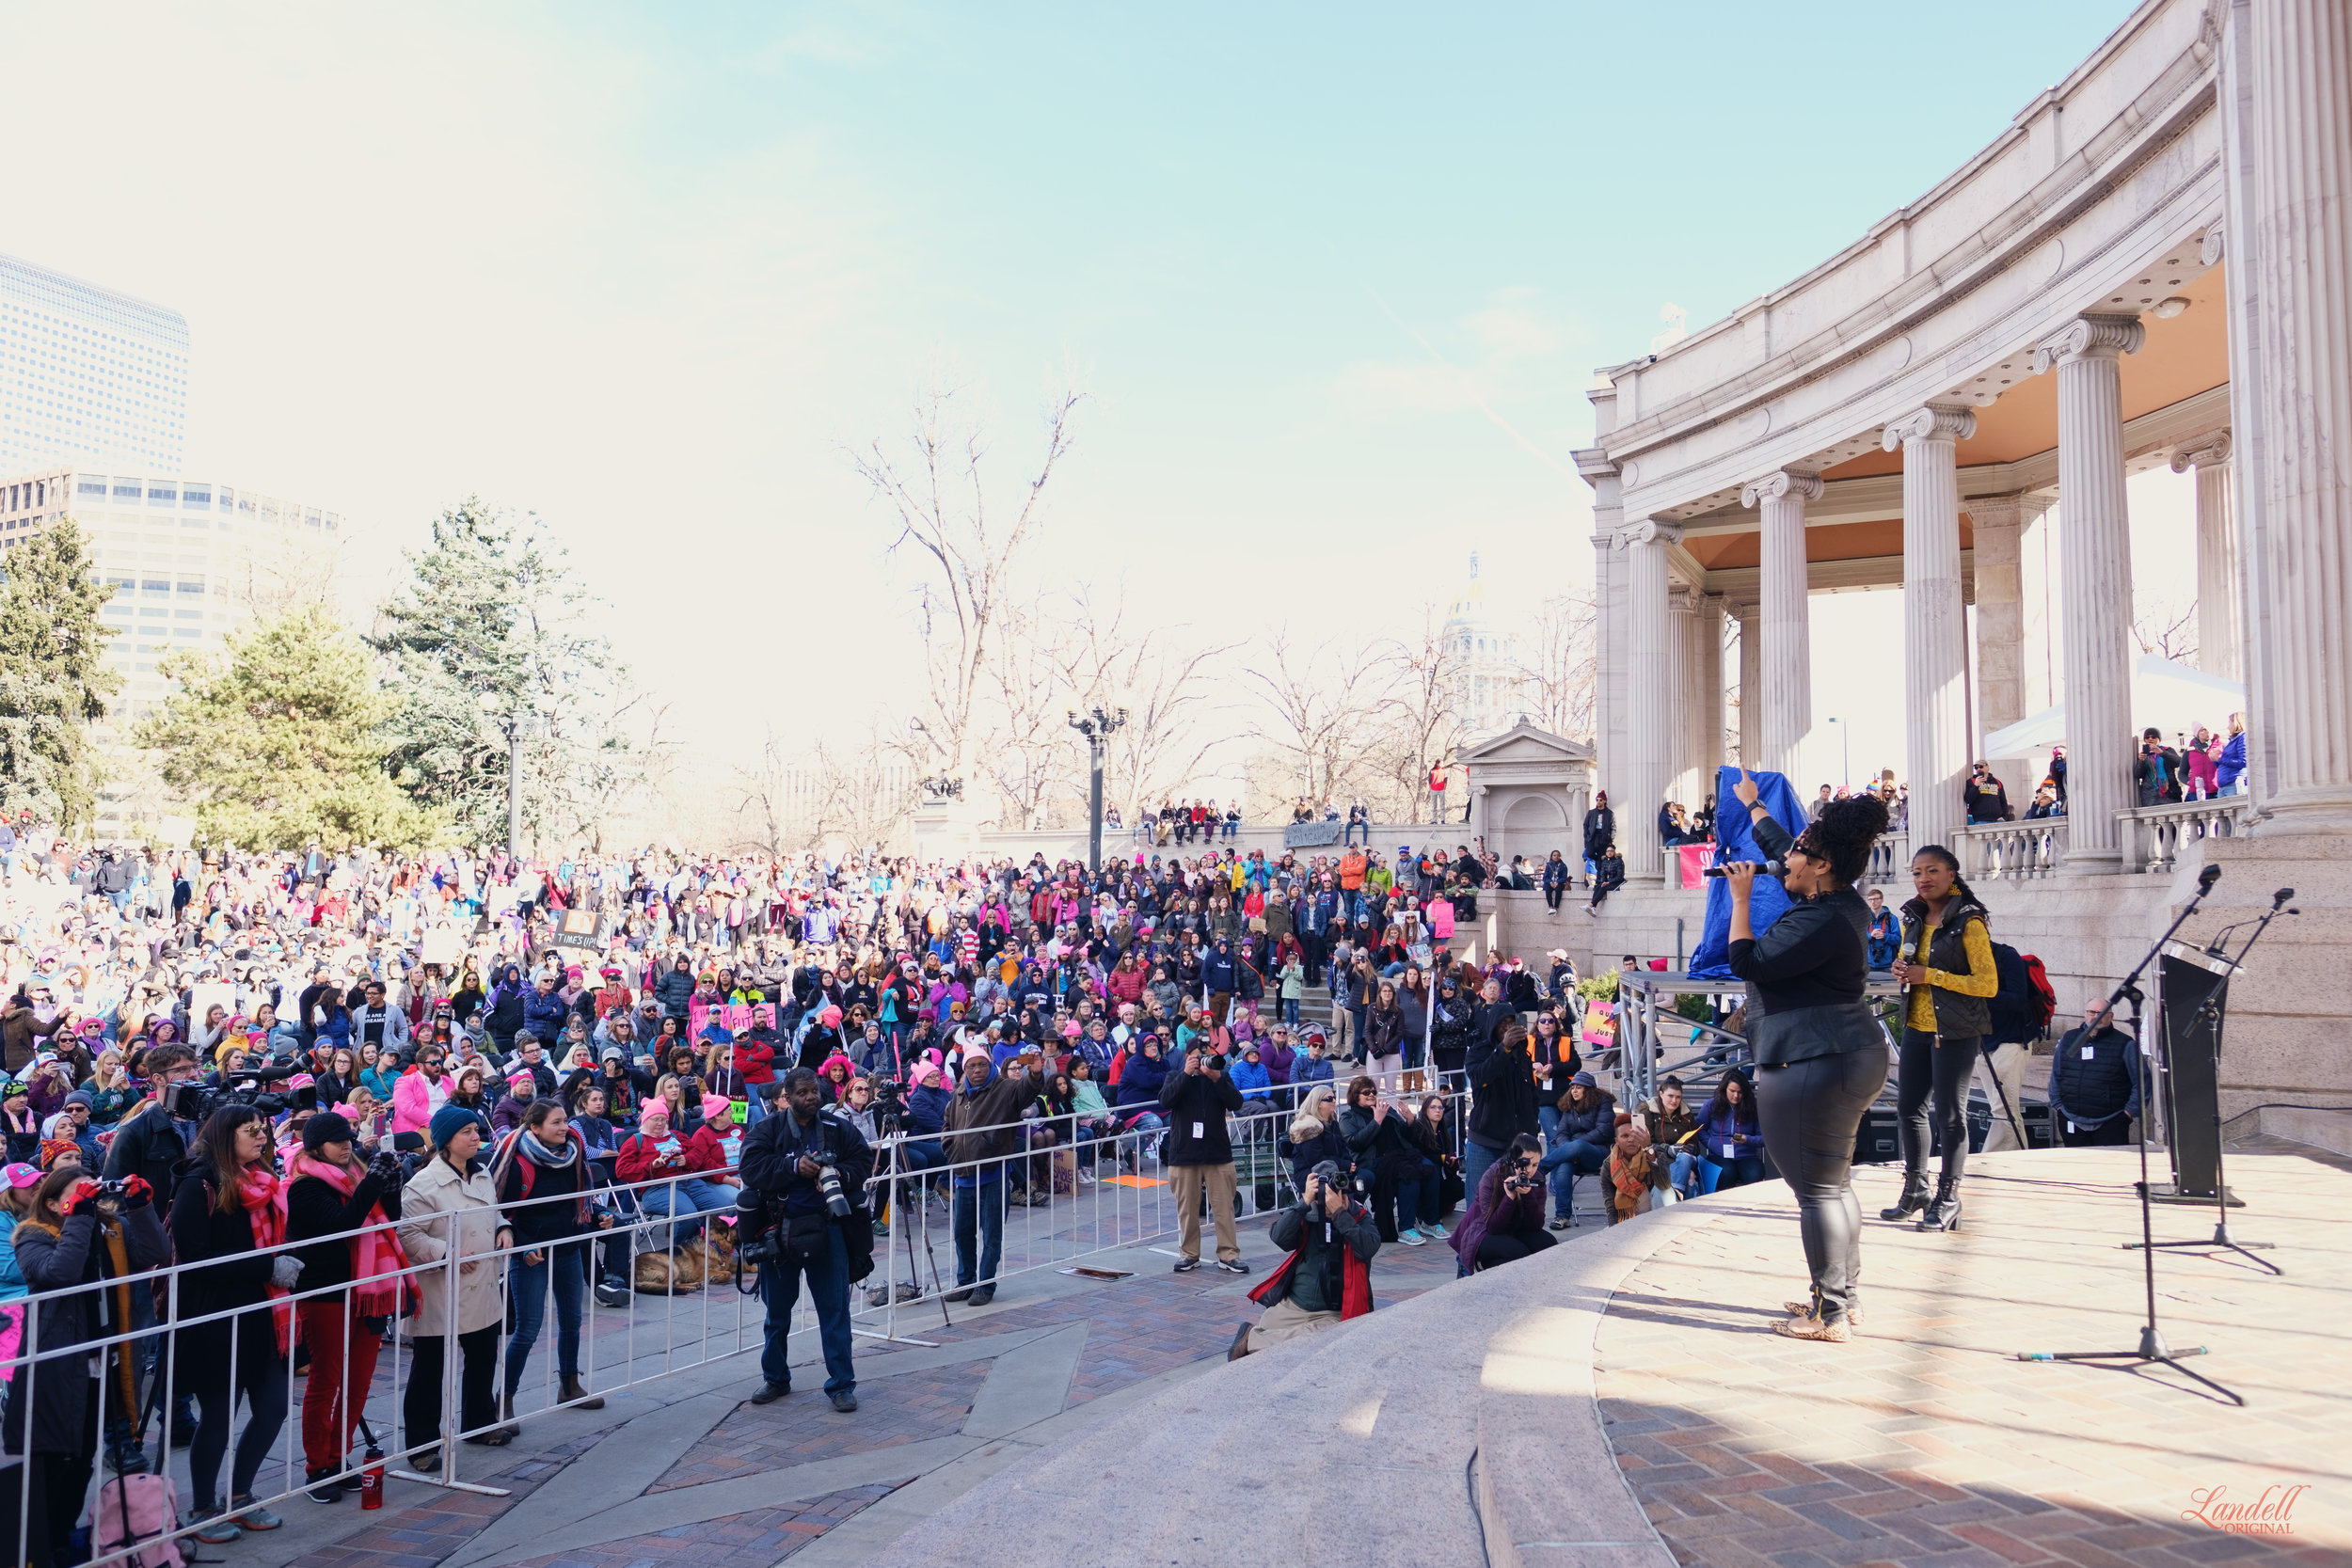 DENVER_WOMENS_MARCH-2018_01-20-2018_0113.jpg